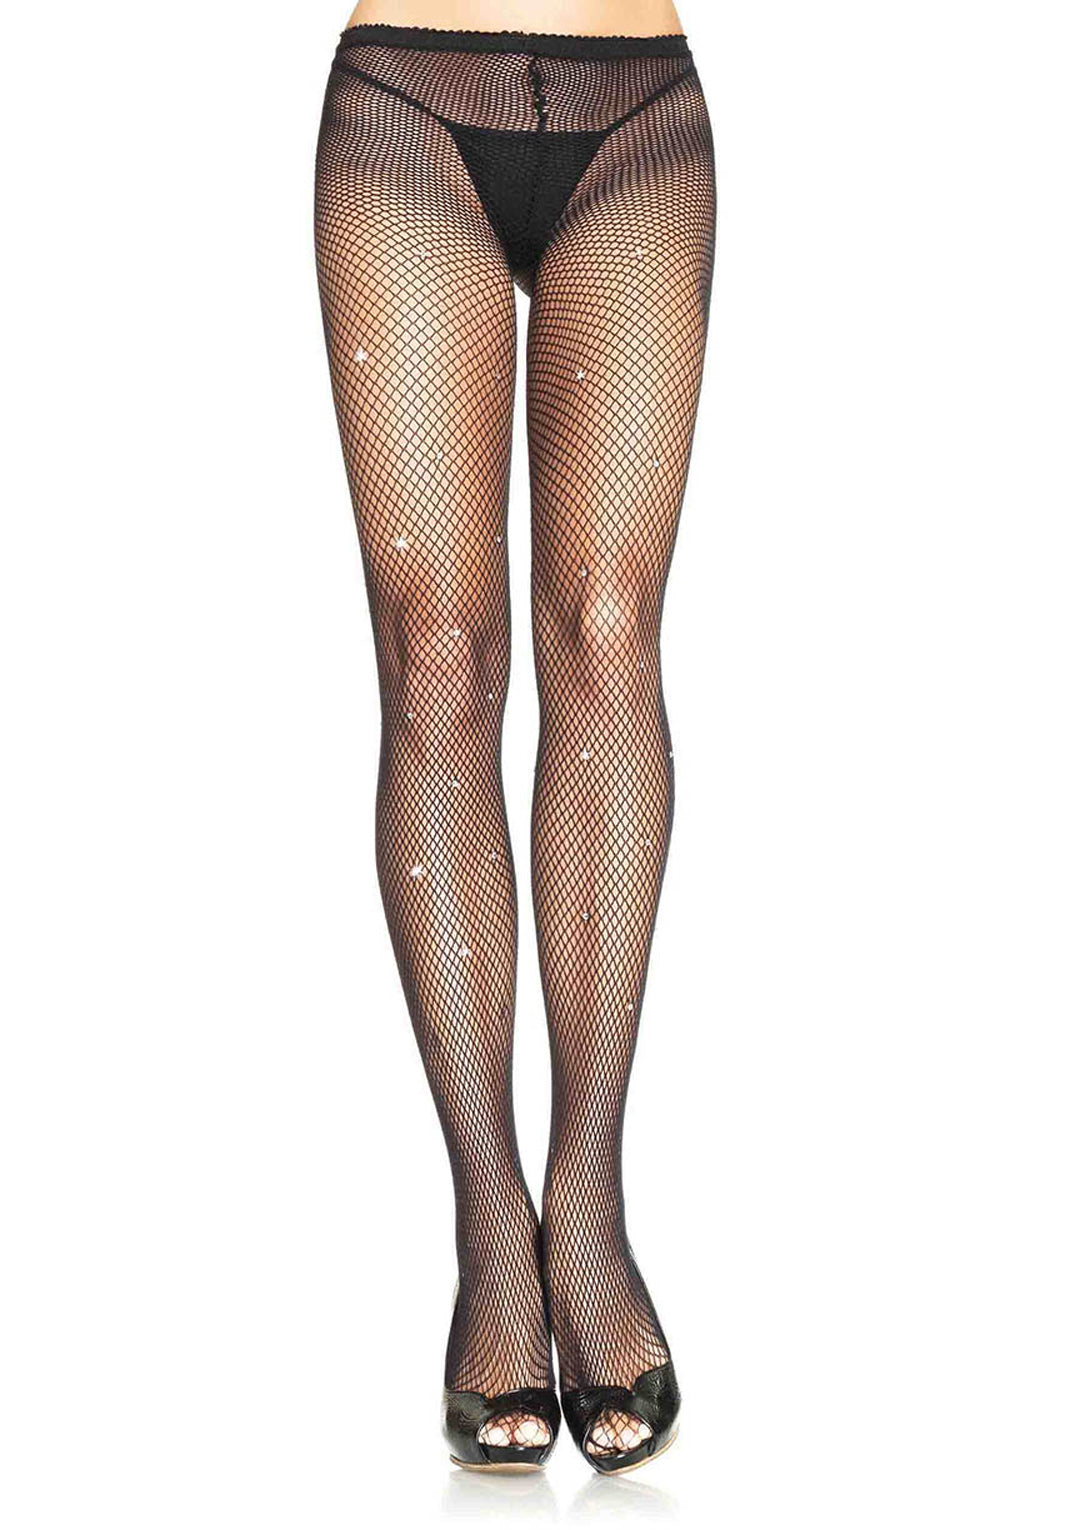 Iridescent Fishnet Stockings